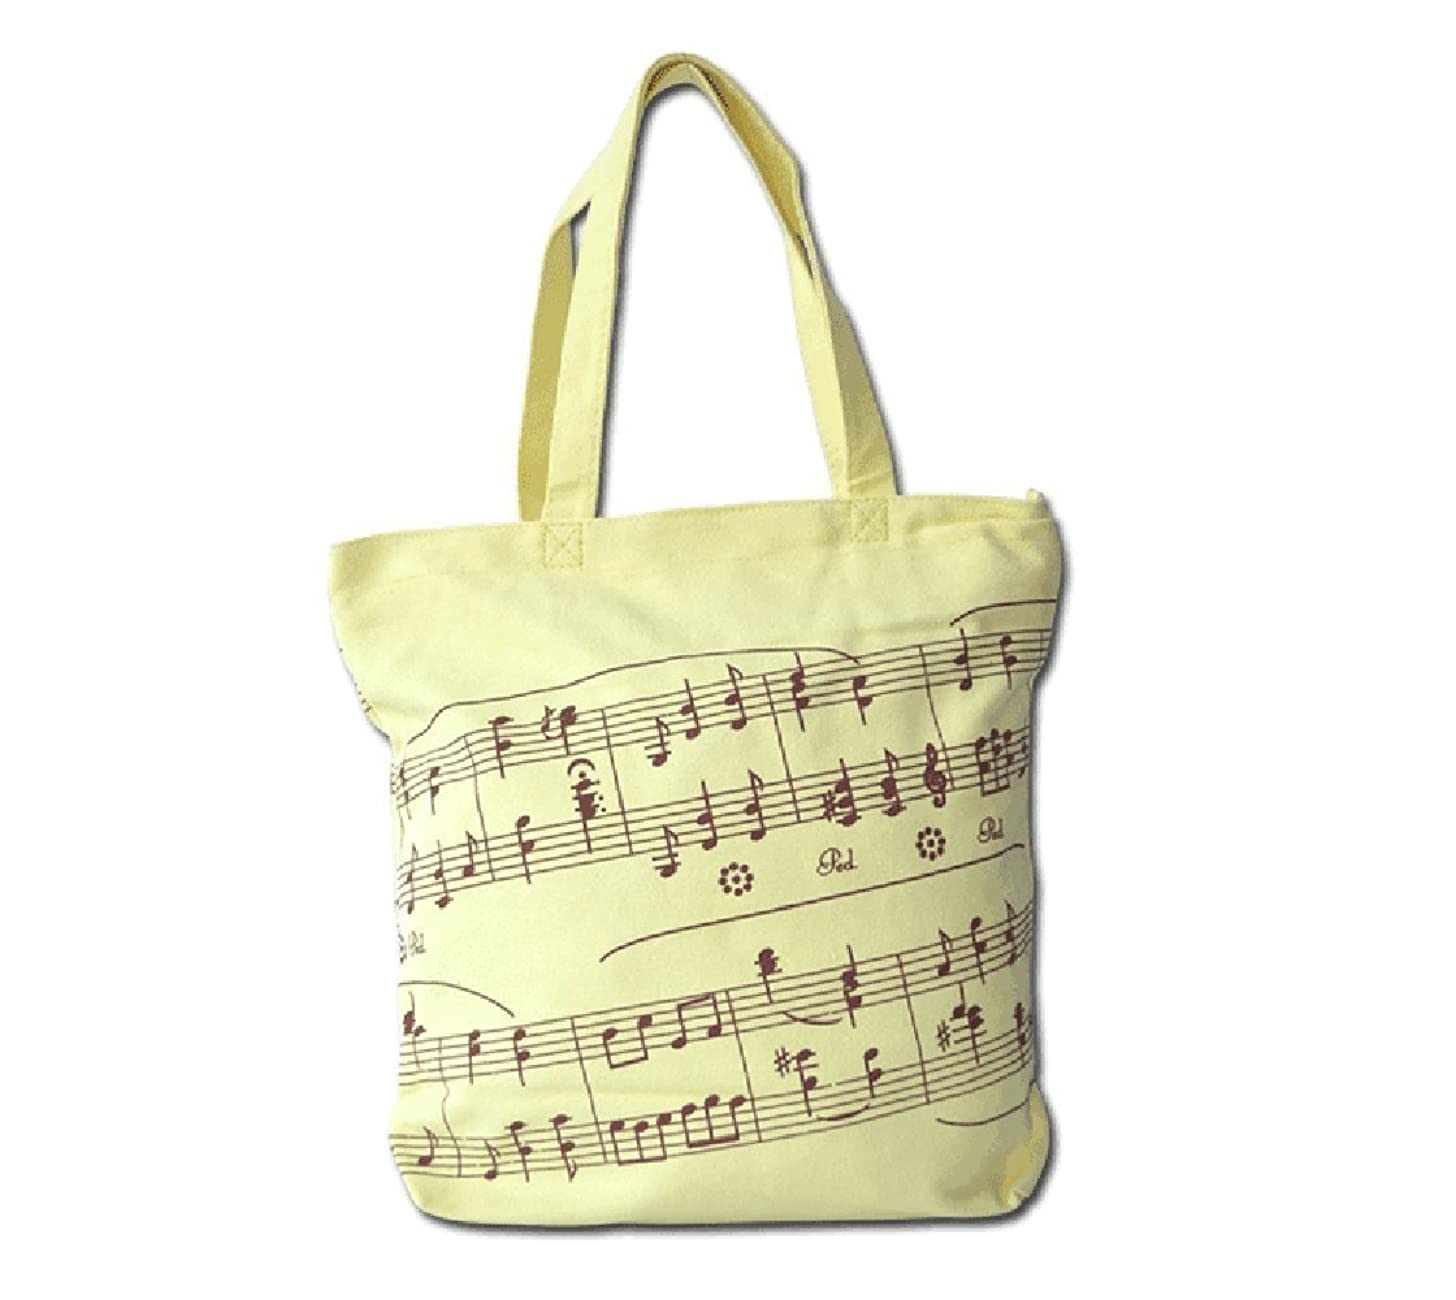 Music Symbols Print Canvas Tote - Simple Loving Music Symbols Print Canvas Tote Handbag Shoulder Shopping Bags Gift (Yellow-MG-349)